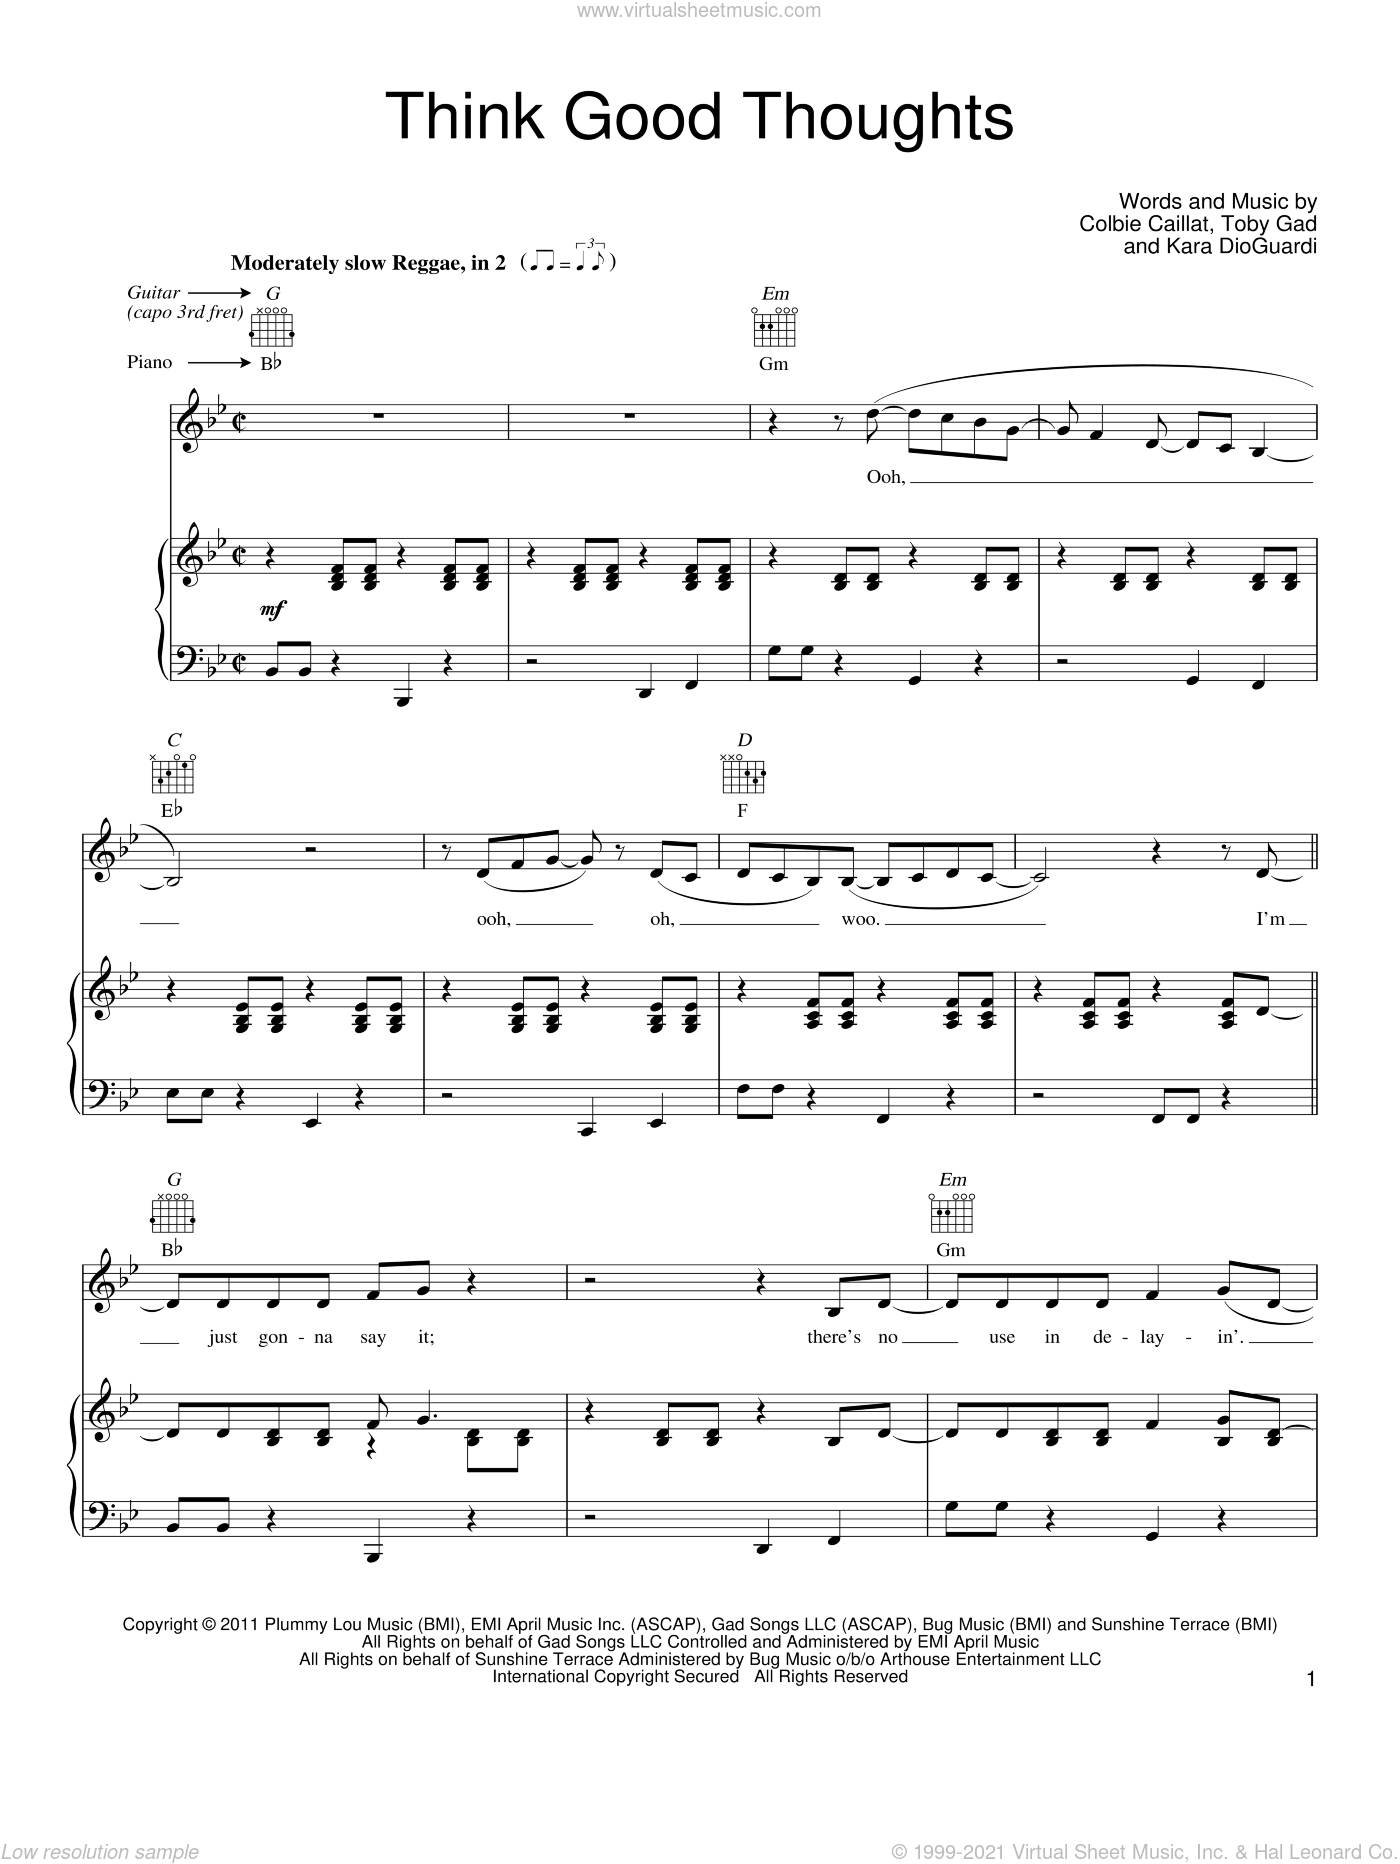 Think Good Thoughts sheet music for voice, piano or guitar by Toby Gad, Colbie Caillat and Kara DioGuardi. Score Image Preview.